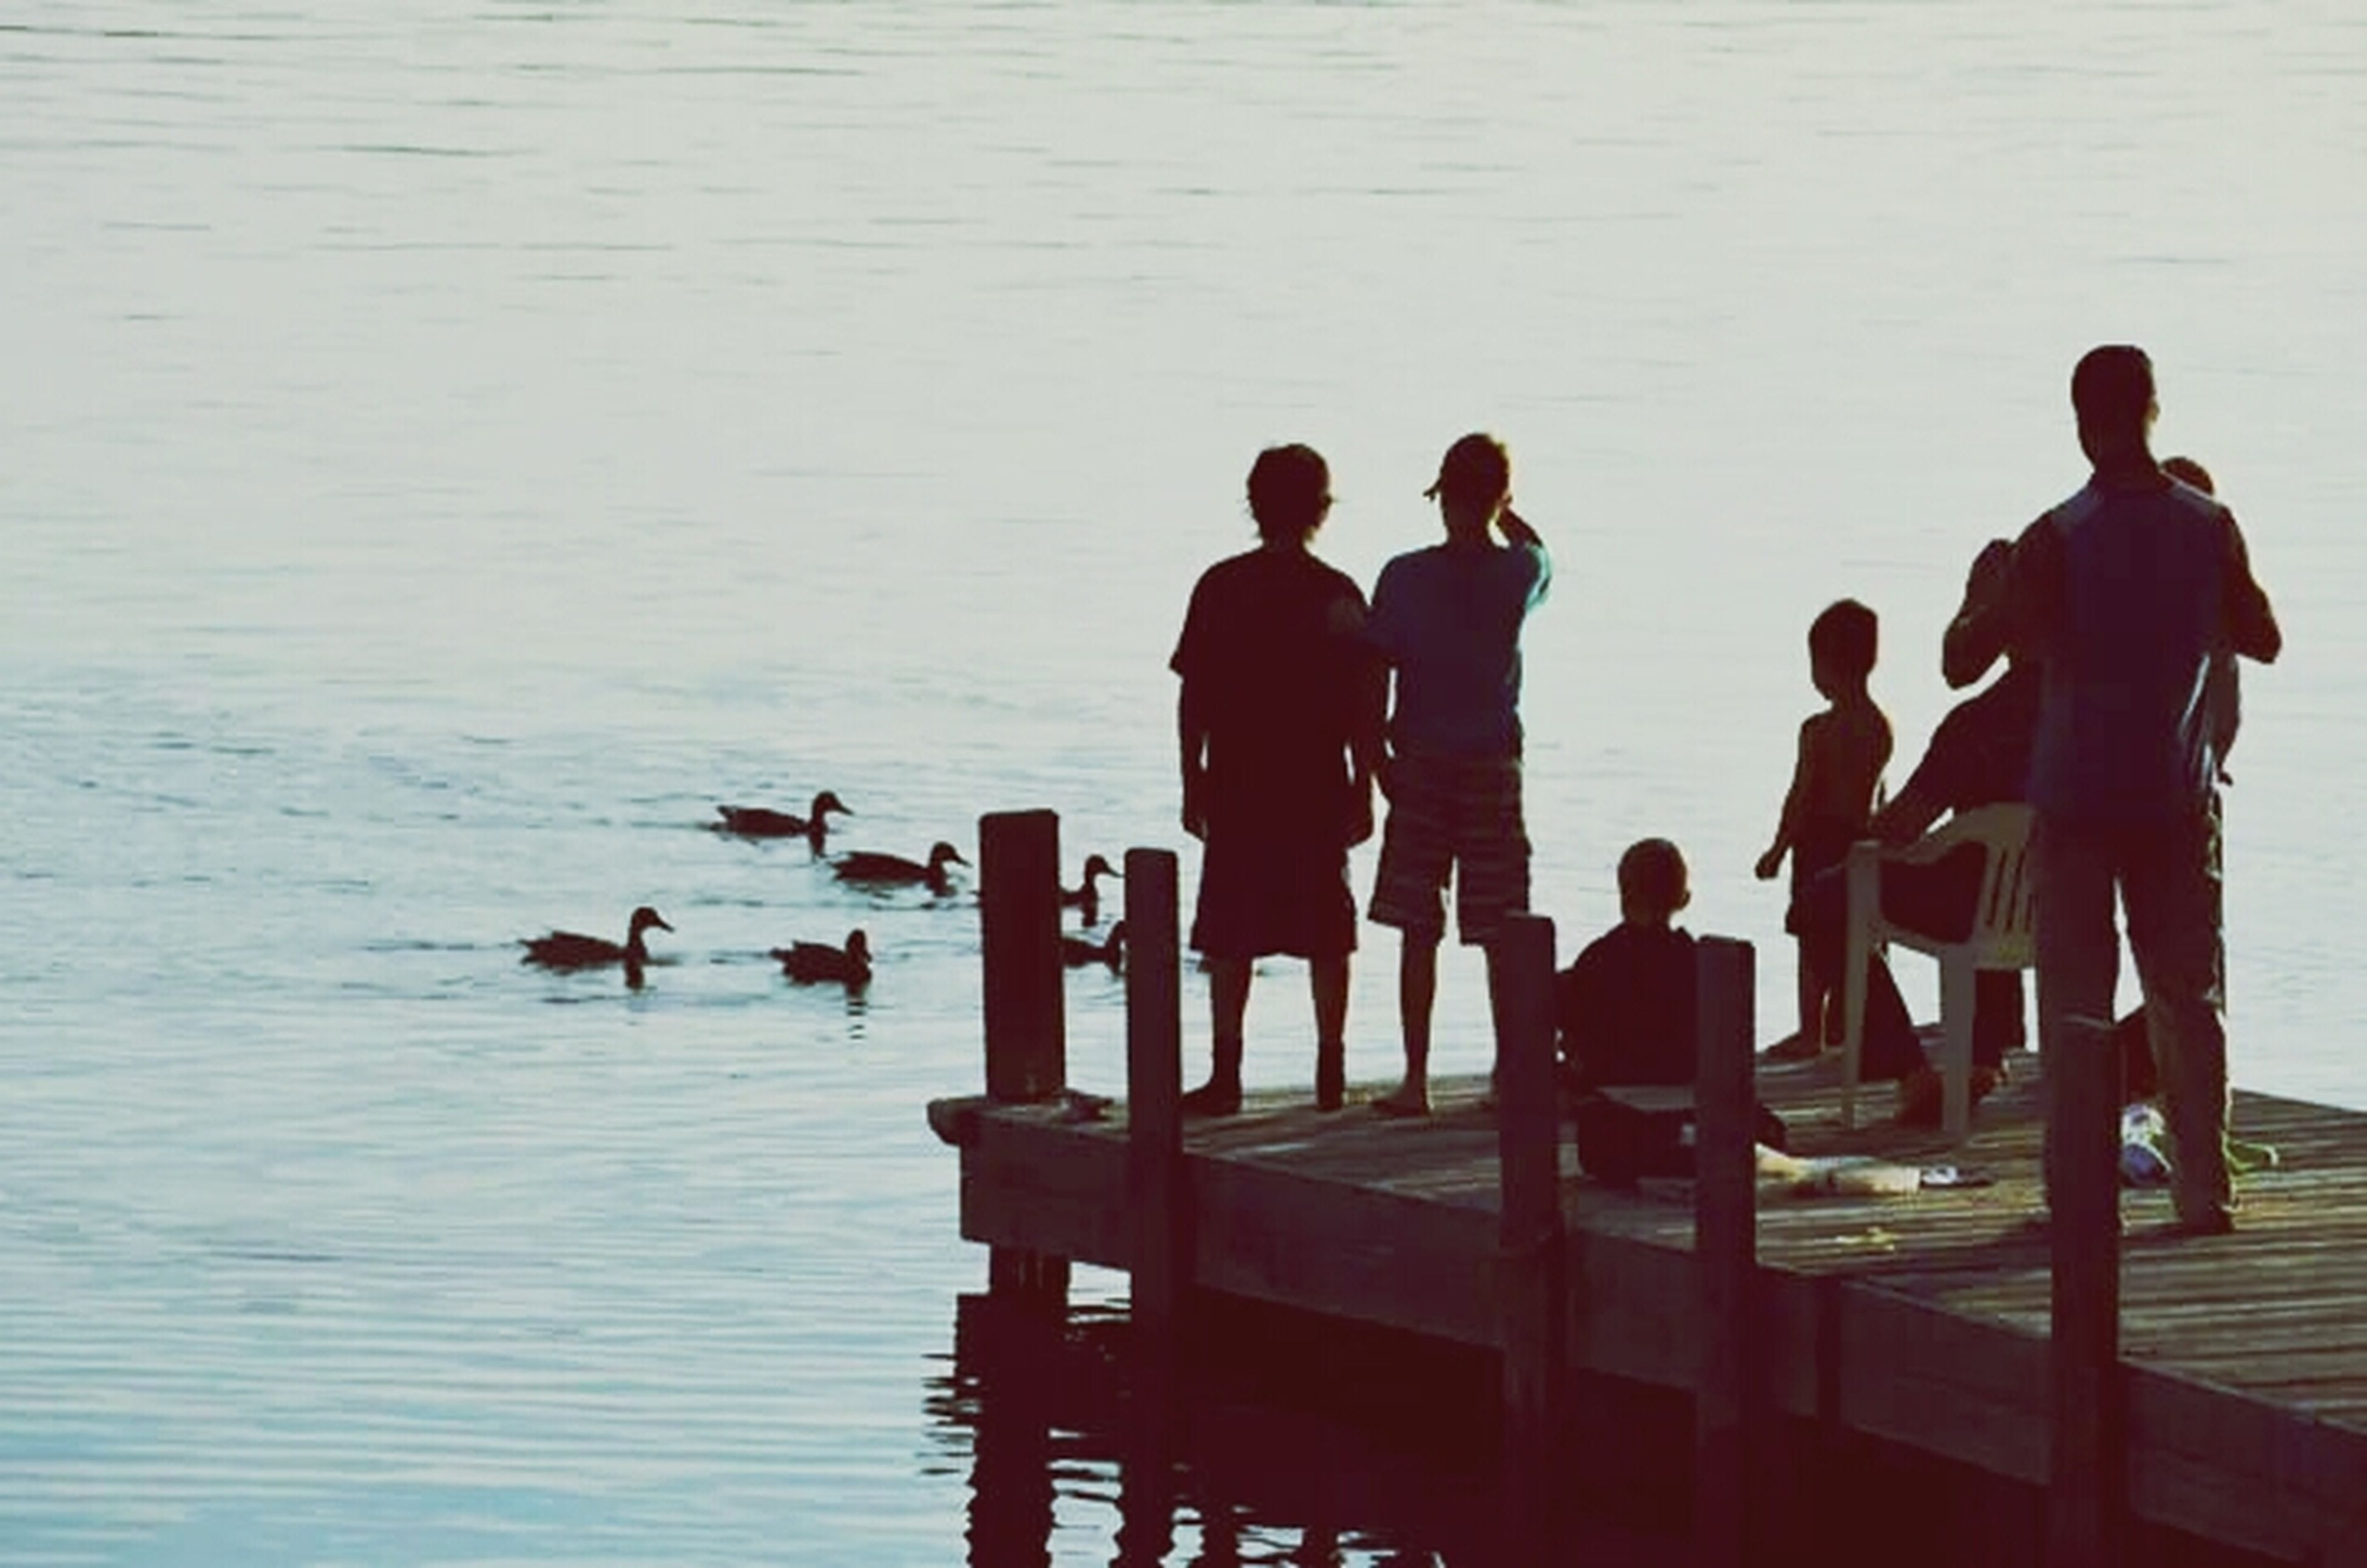 water, men, lifestyles, togetherness, leisure activity, person, silhouette, sea, standing, sitting, friendship, medium group of people, lake, pier, large group of people, reflection, vacations